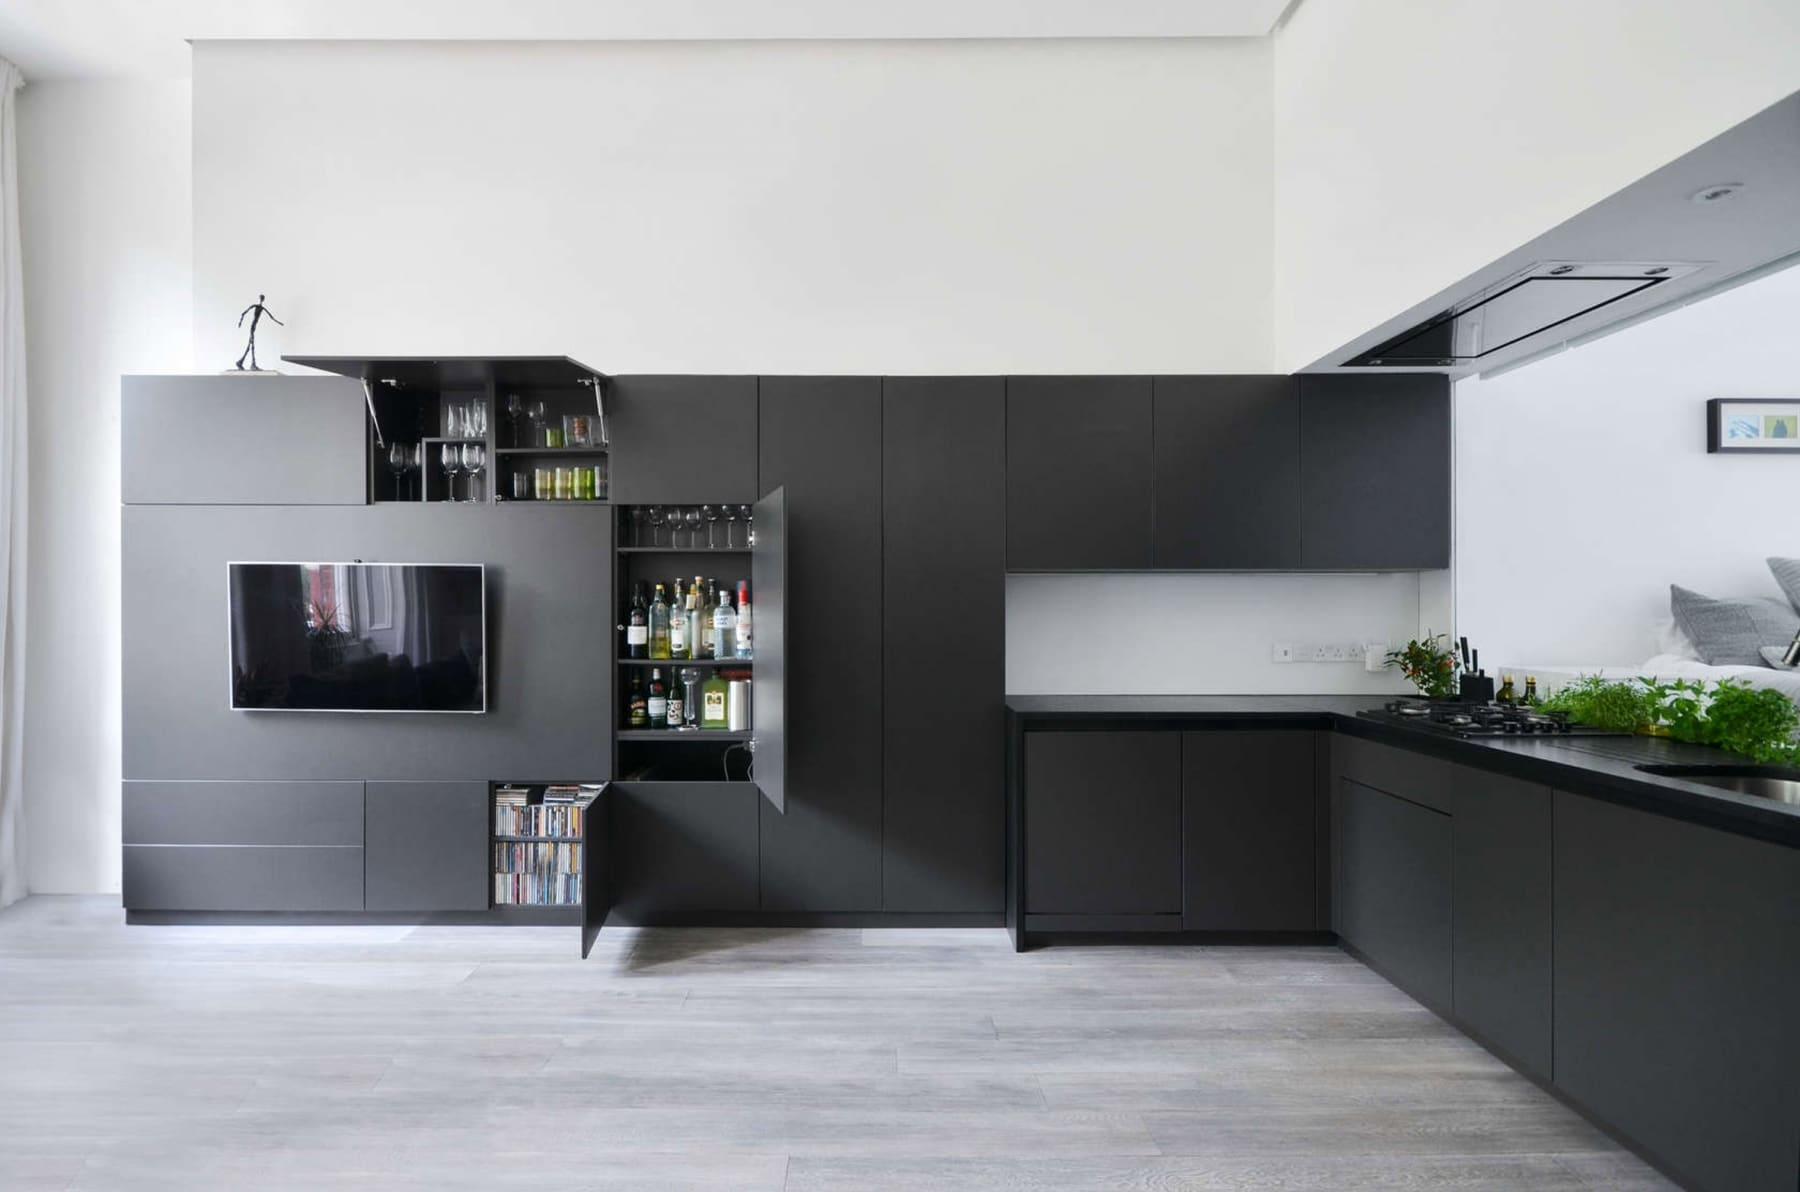 black kitchen cabinets wrap around the wall